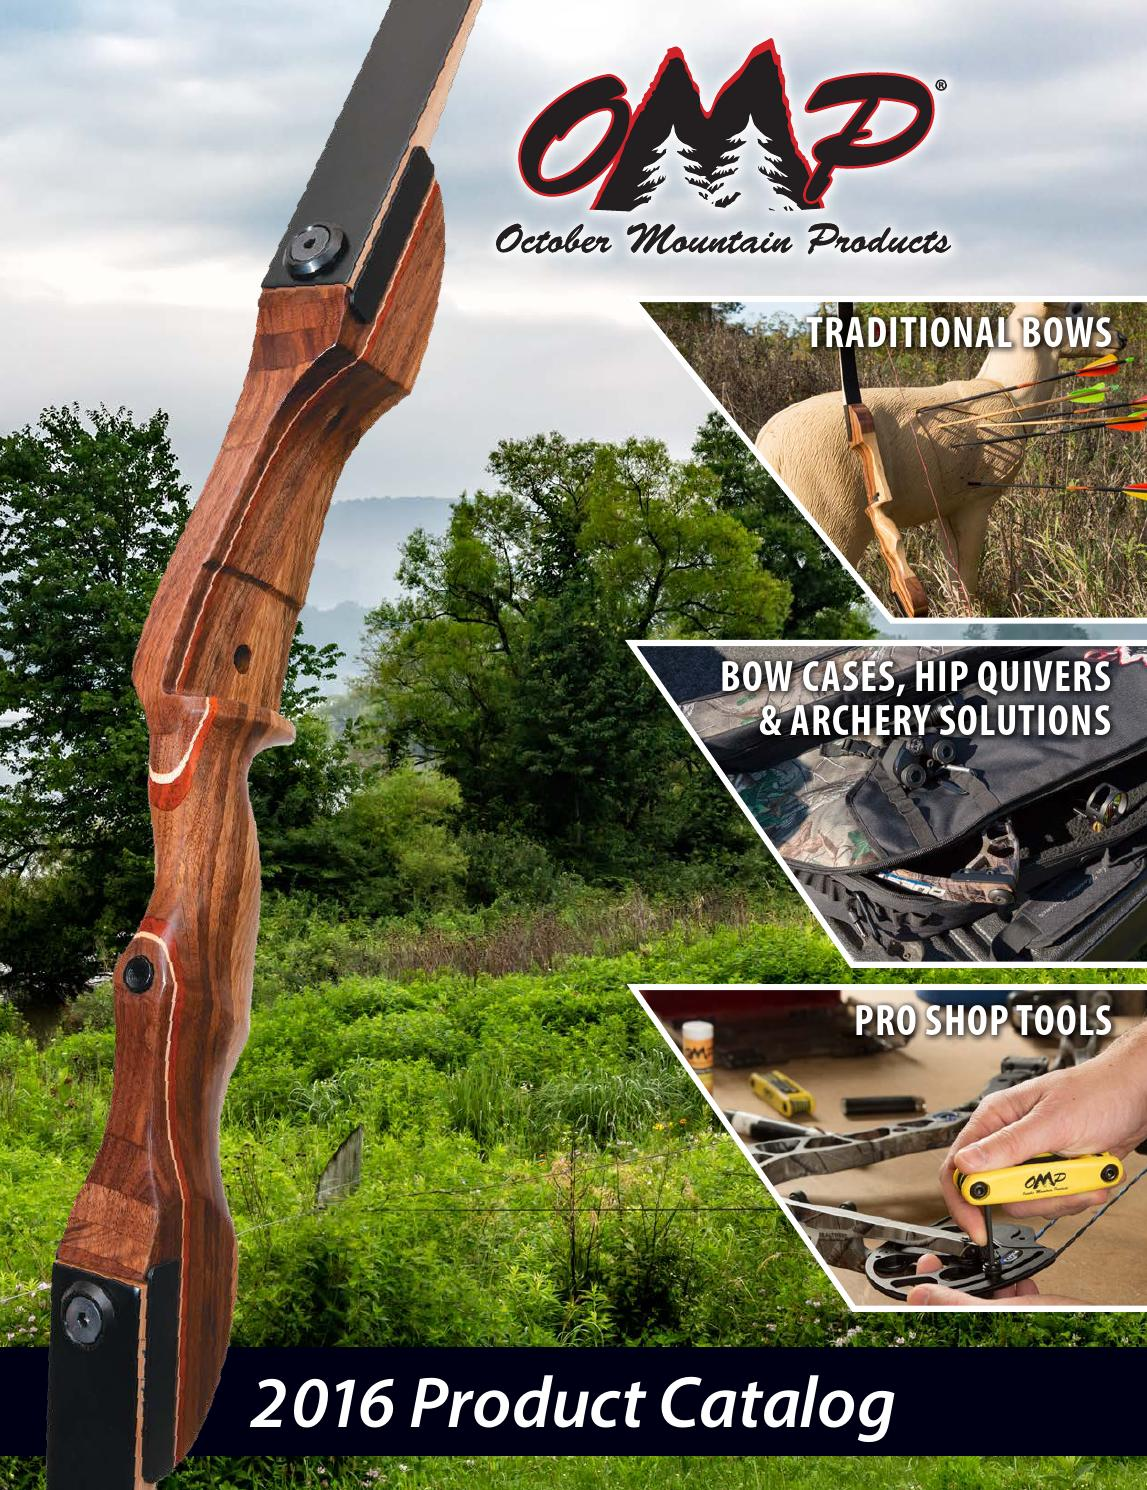 OCTOBER MOUNTAIN CROSSBOW CABLES 22 IN PARKER CENTERFIRE